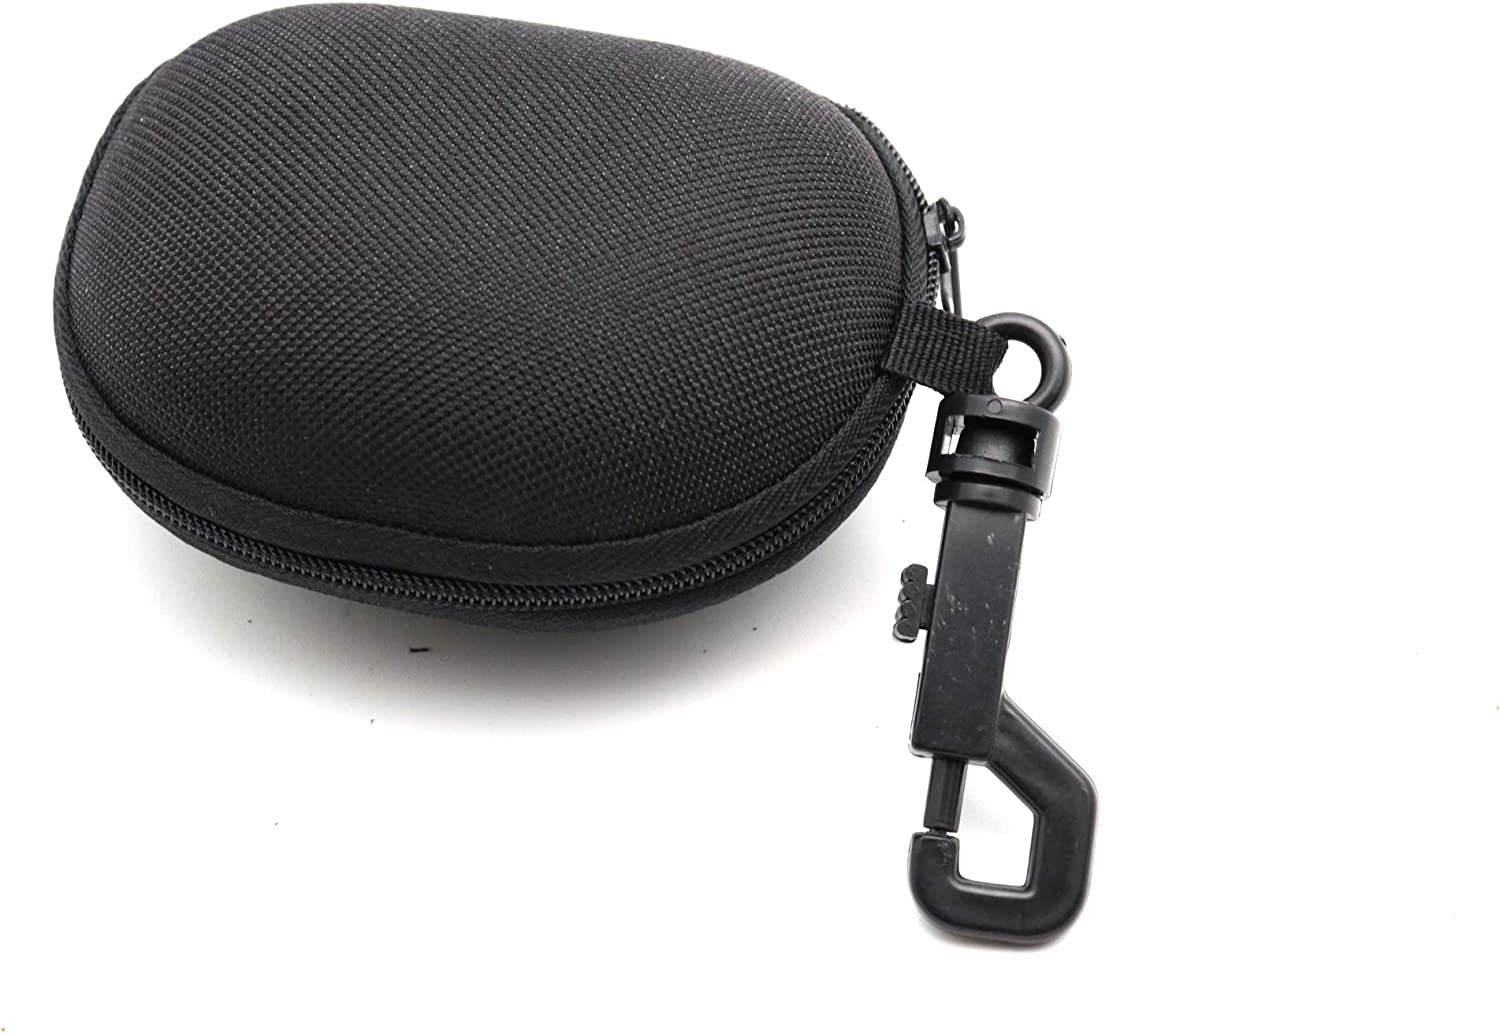 ColorViper Sports Protective Hard or semi hard Shell Case for Eyeglasses and Sunglasses w/Cleaning Cloth